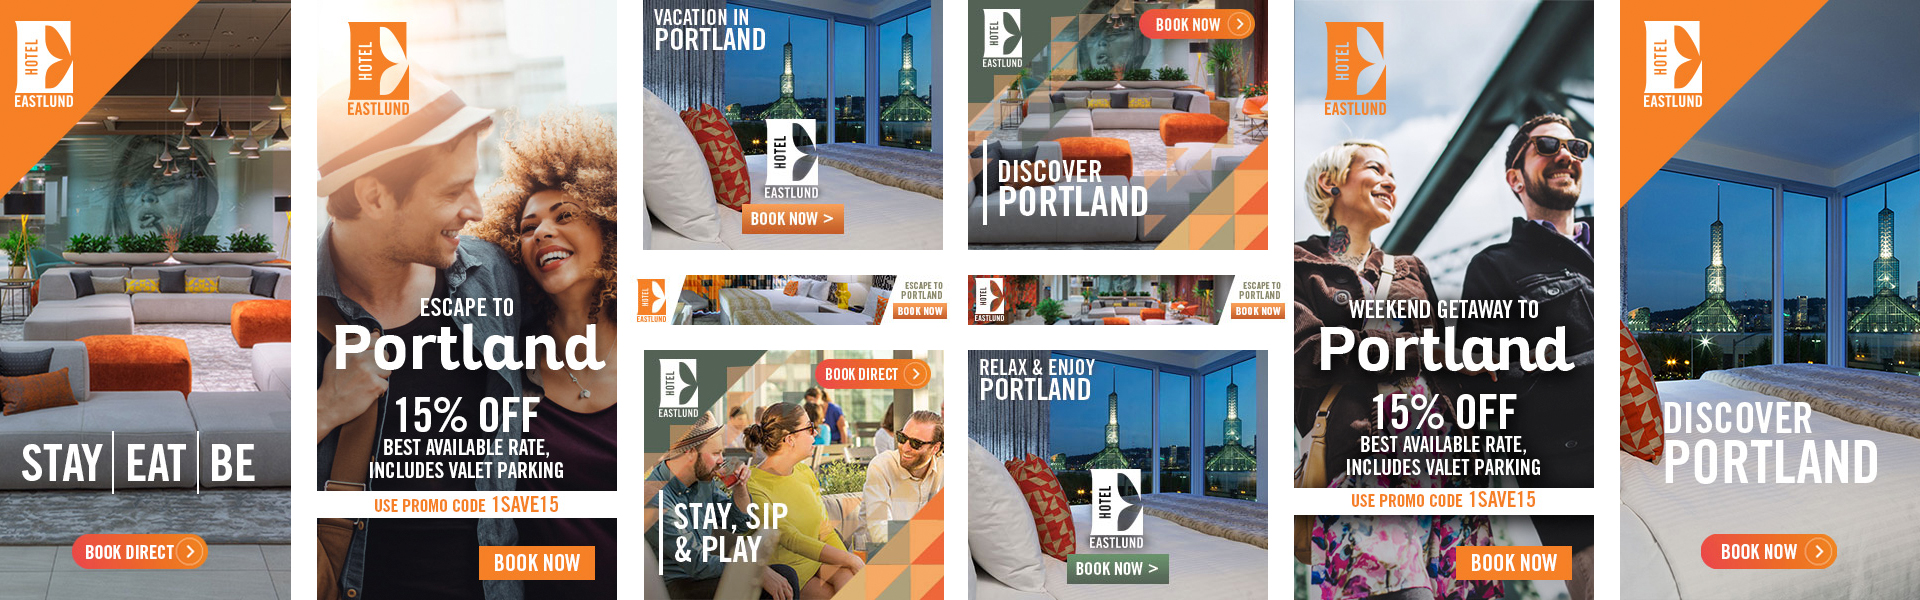 Hotel Eastlund Digital Ads | Seattle Marketing Agency | CMA